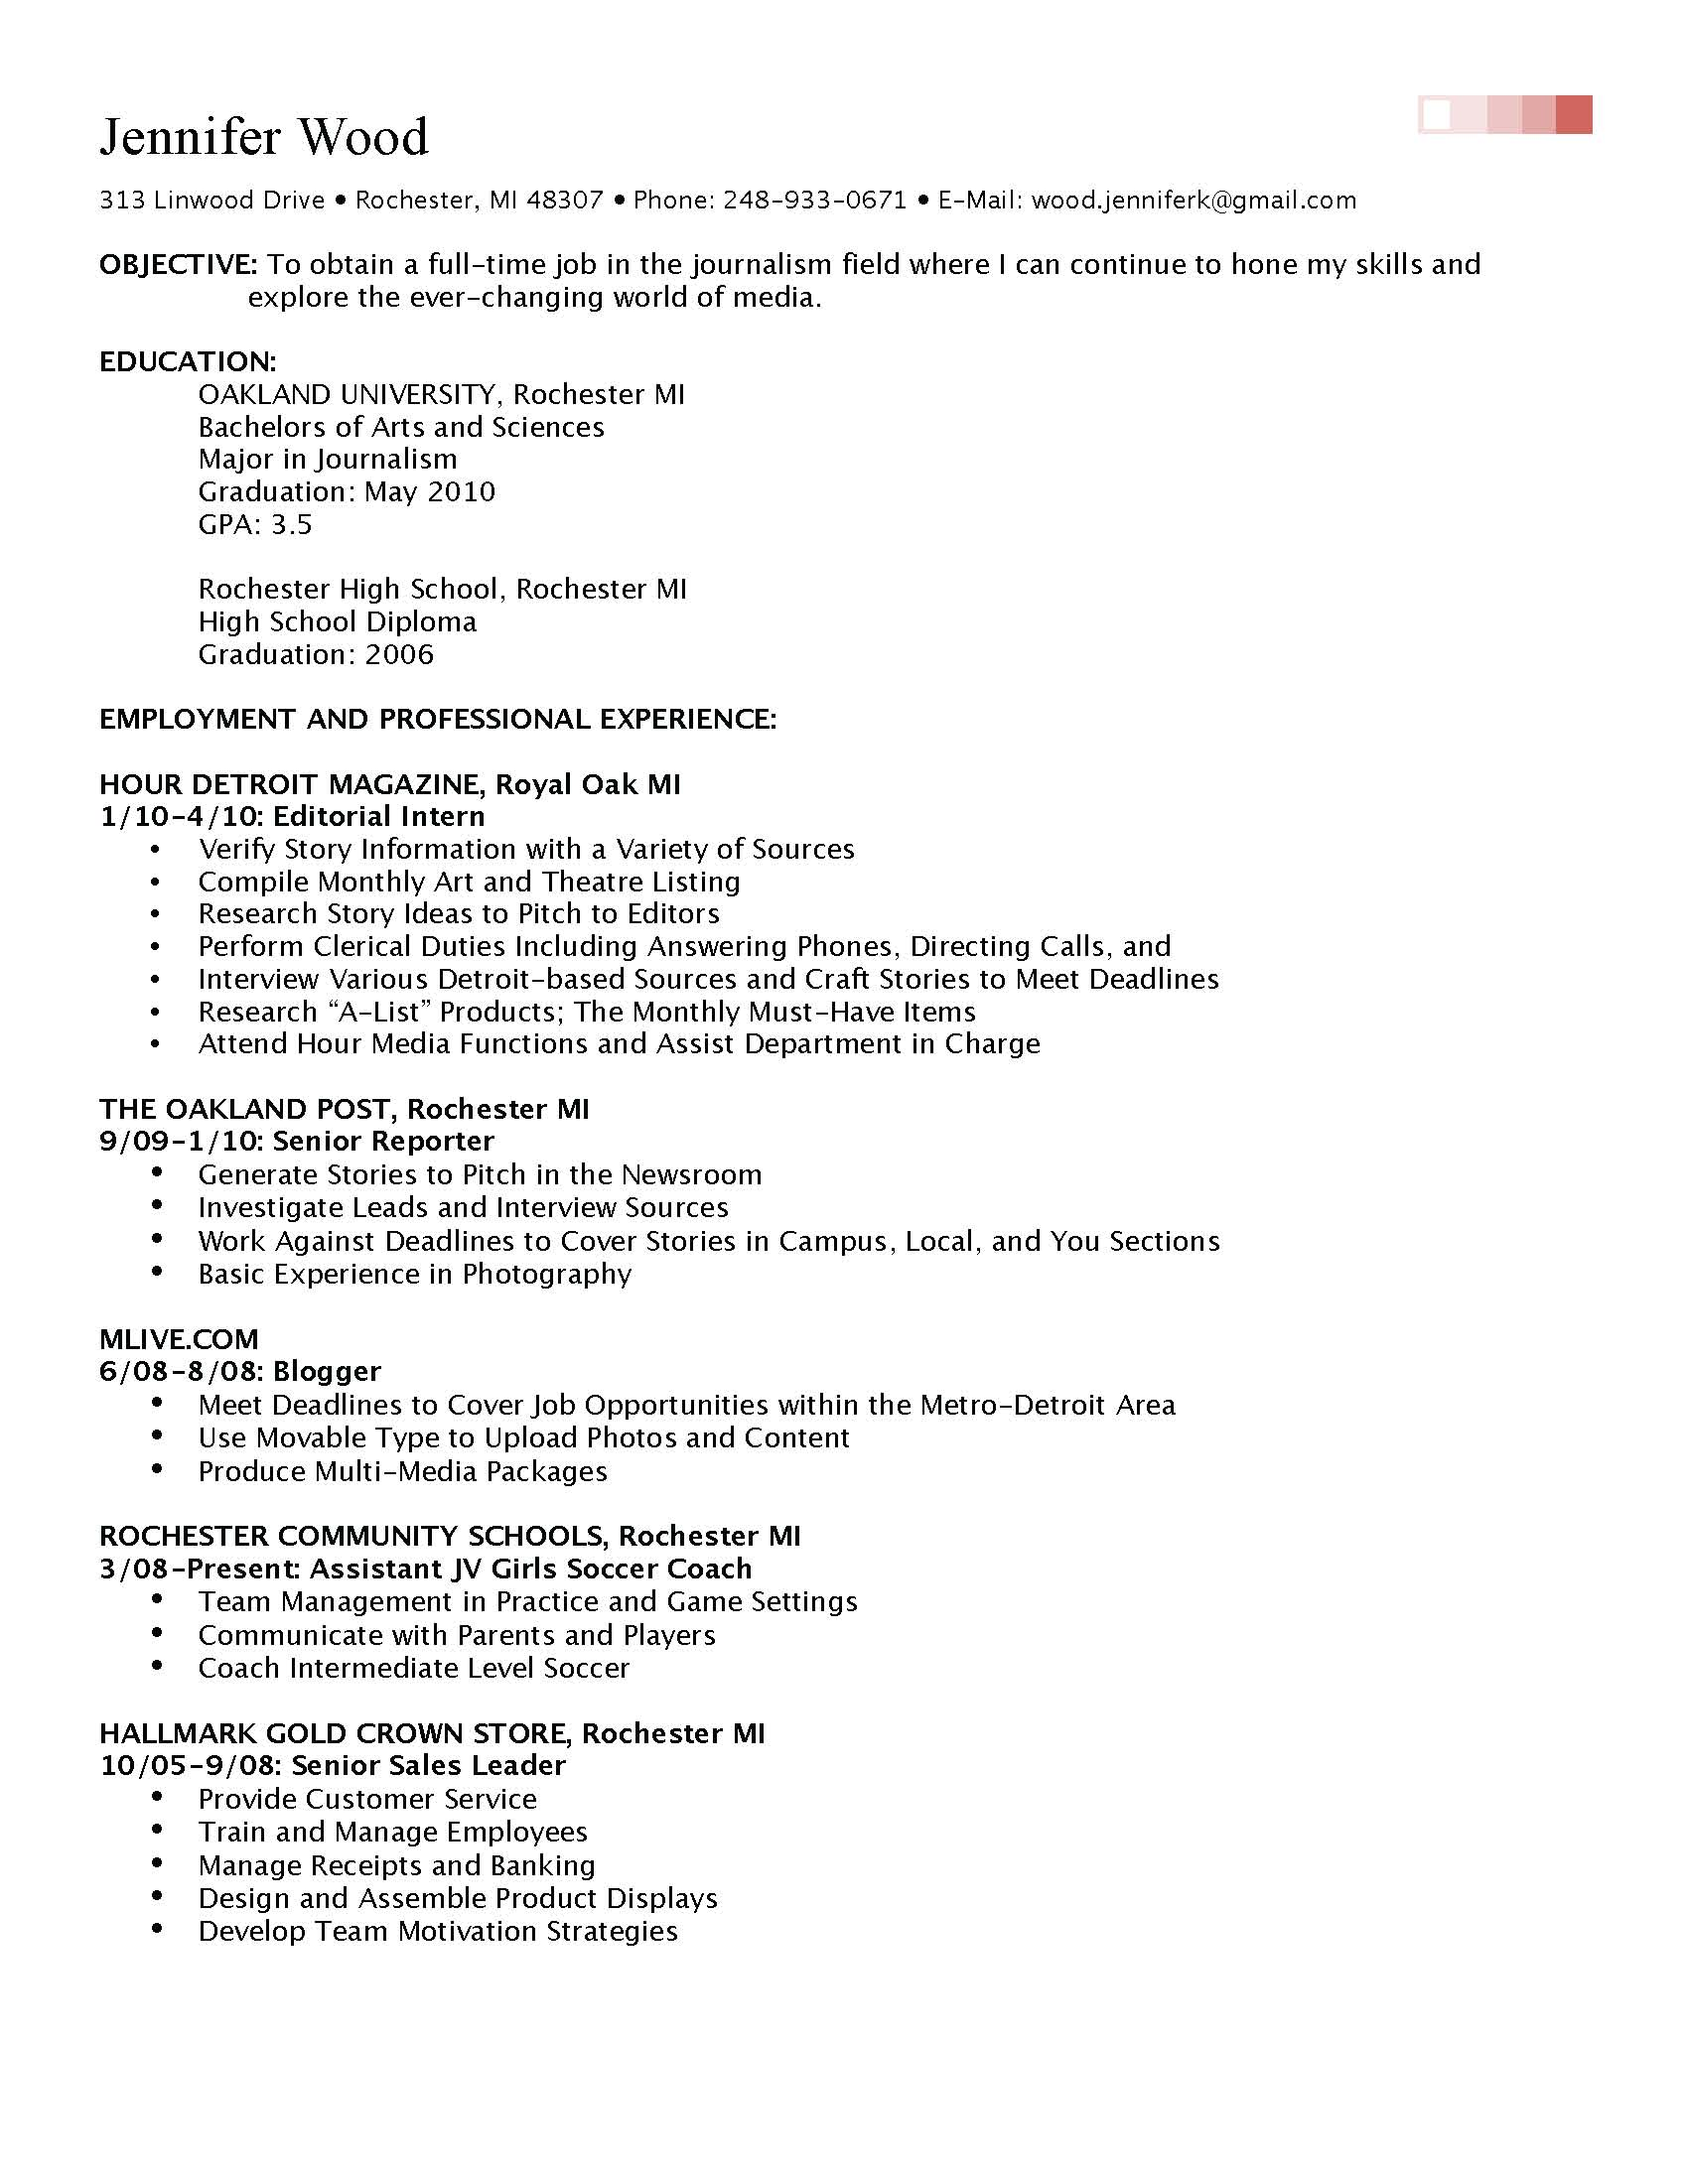 Filled Out Resume Examples